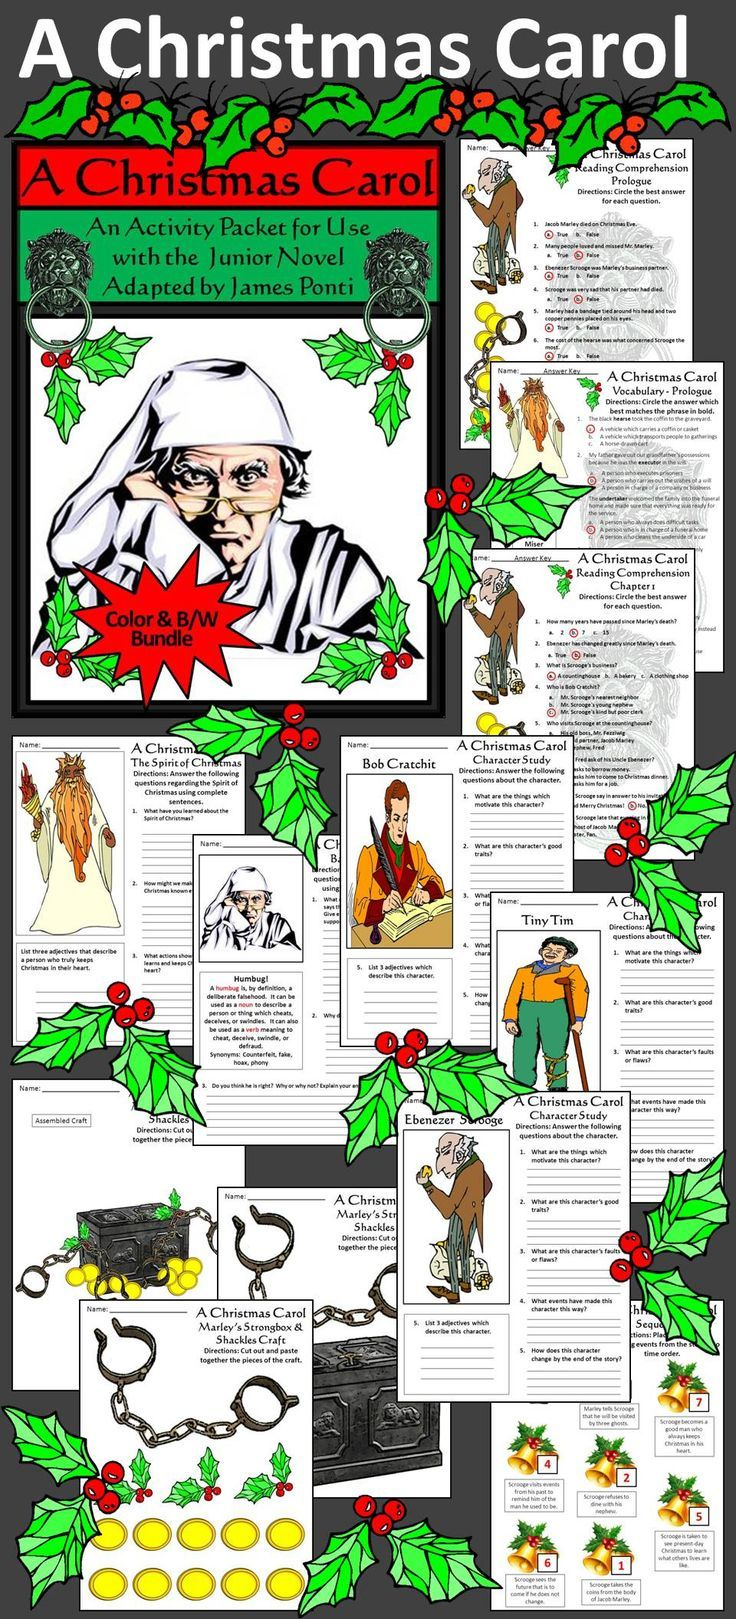 Christmas Carol Activity Packet – A Christmas Carol Worksheets